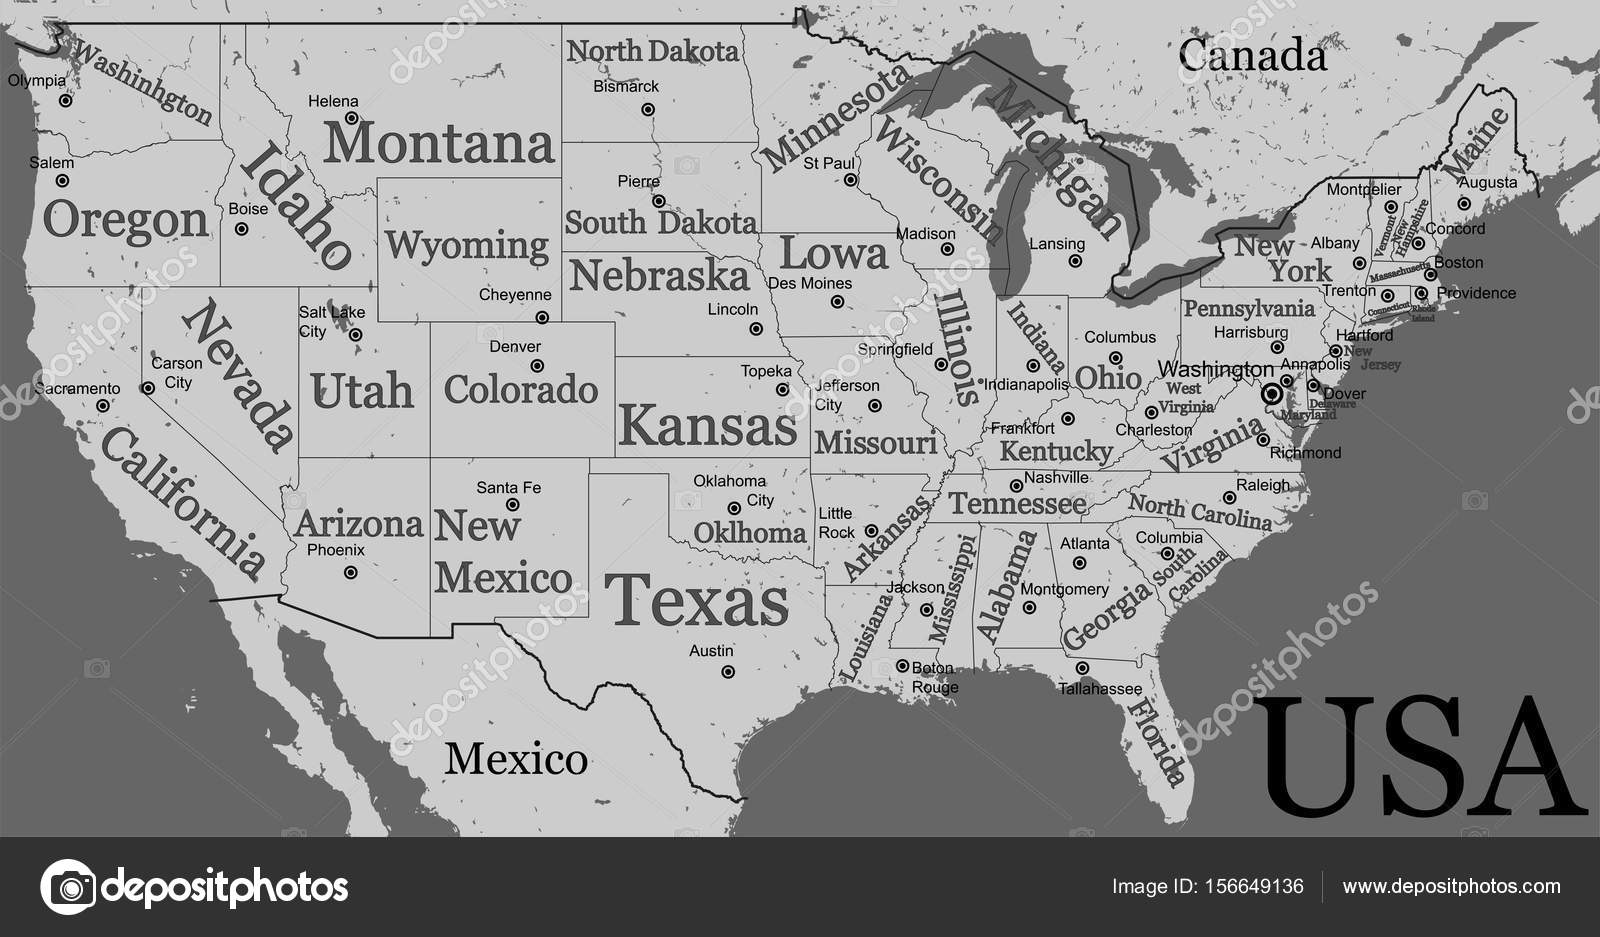 Blank USA map isolated on gray background. United States of ...